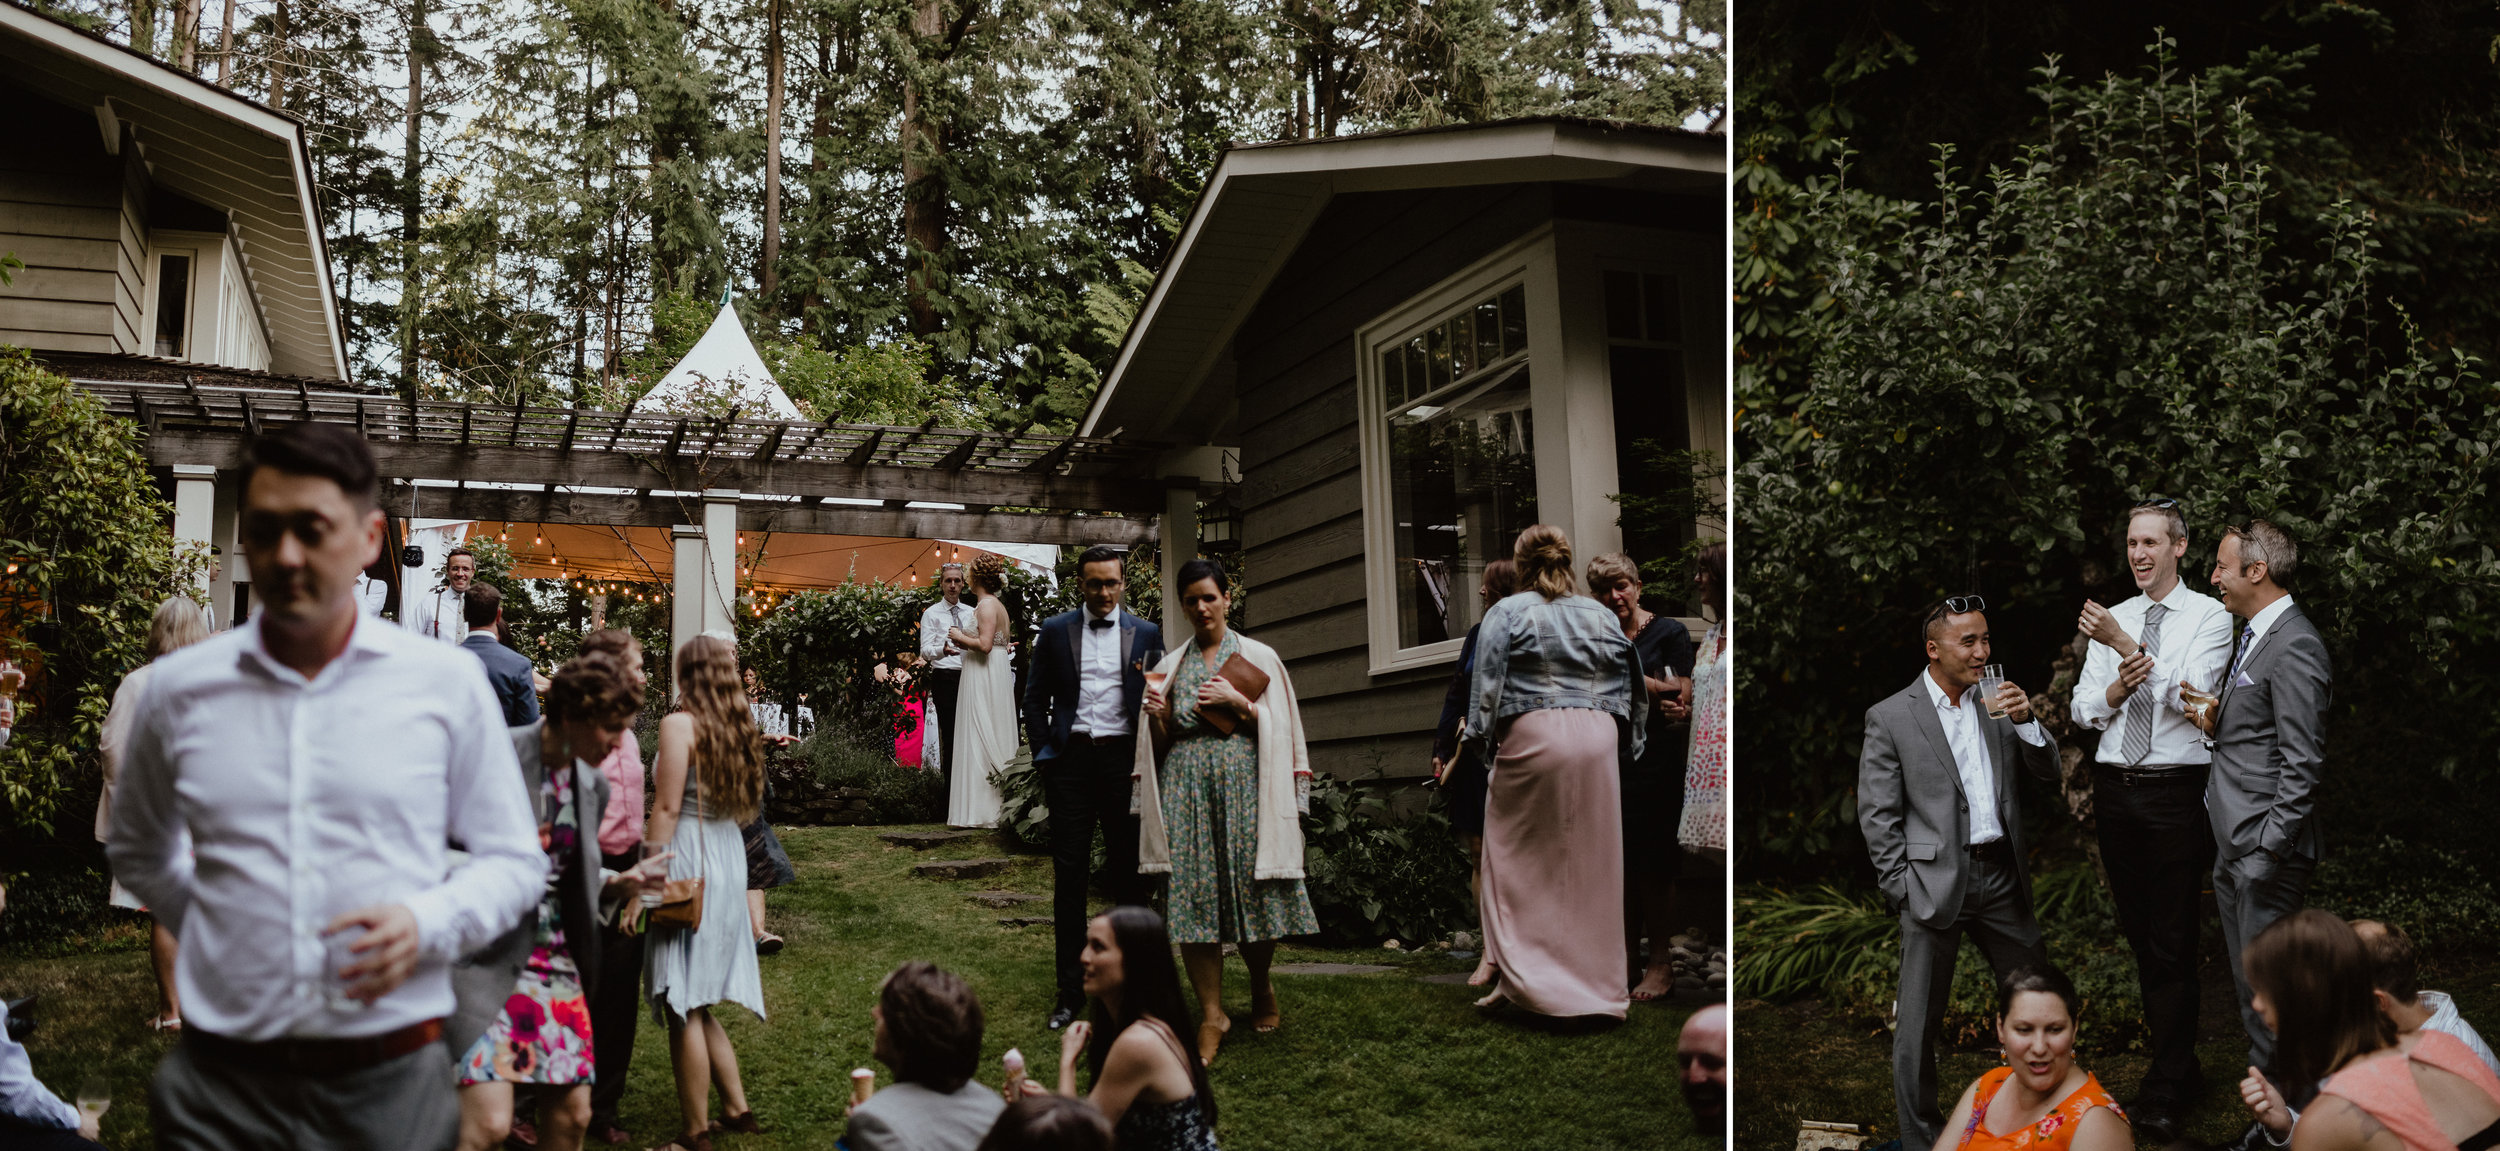 west-vancouver-backyard-wedding-242.jpg